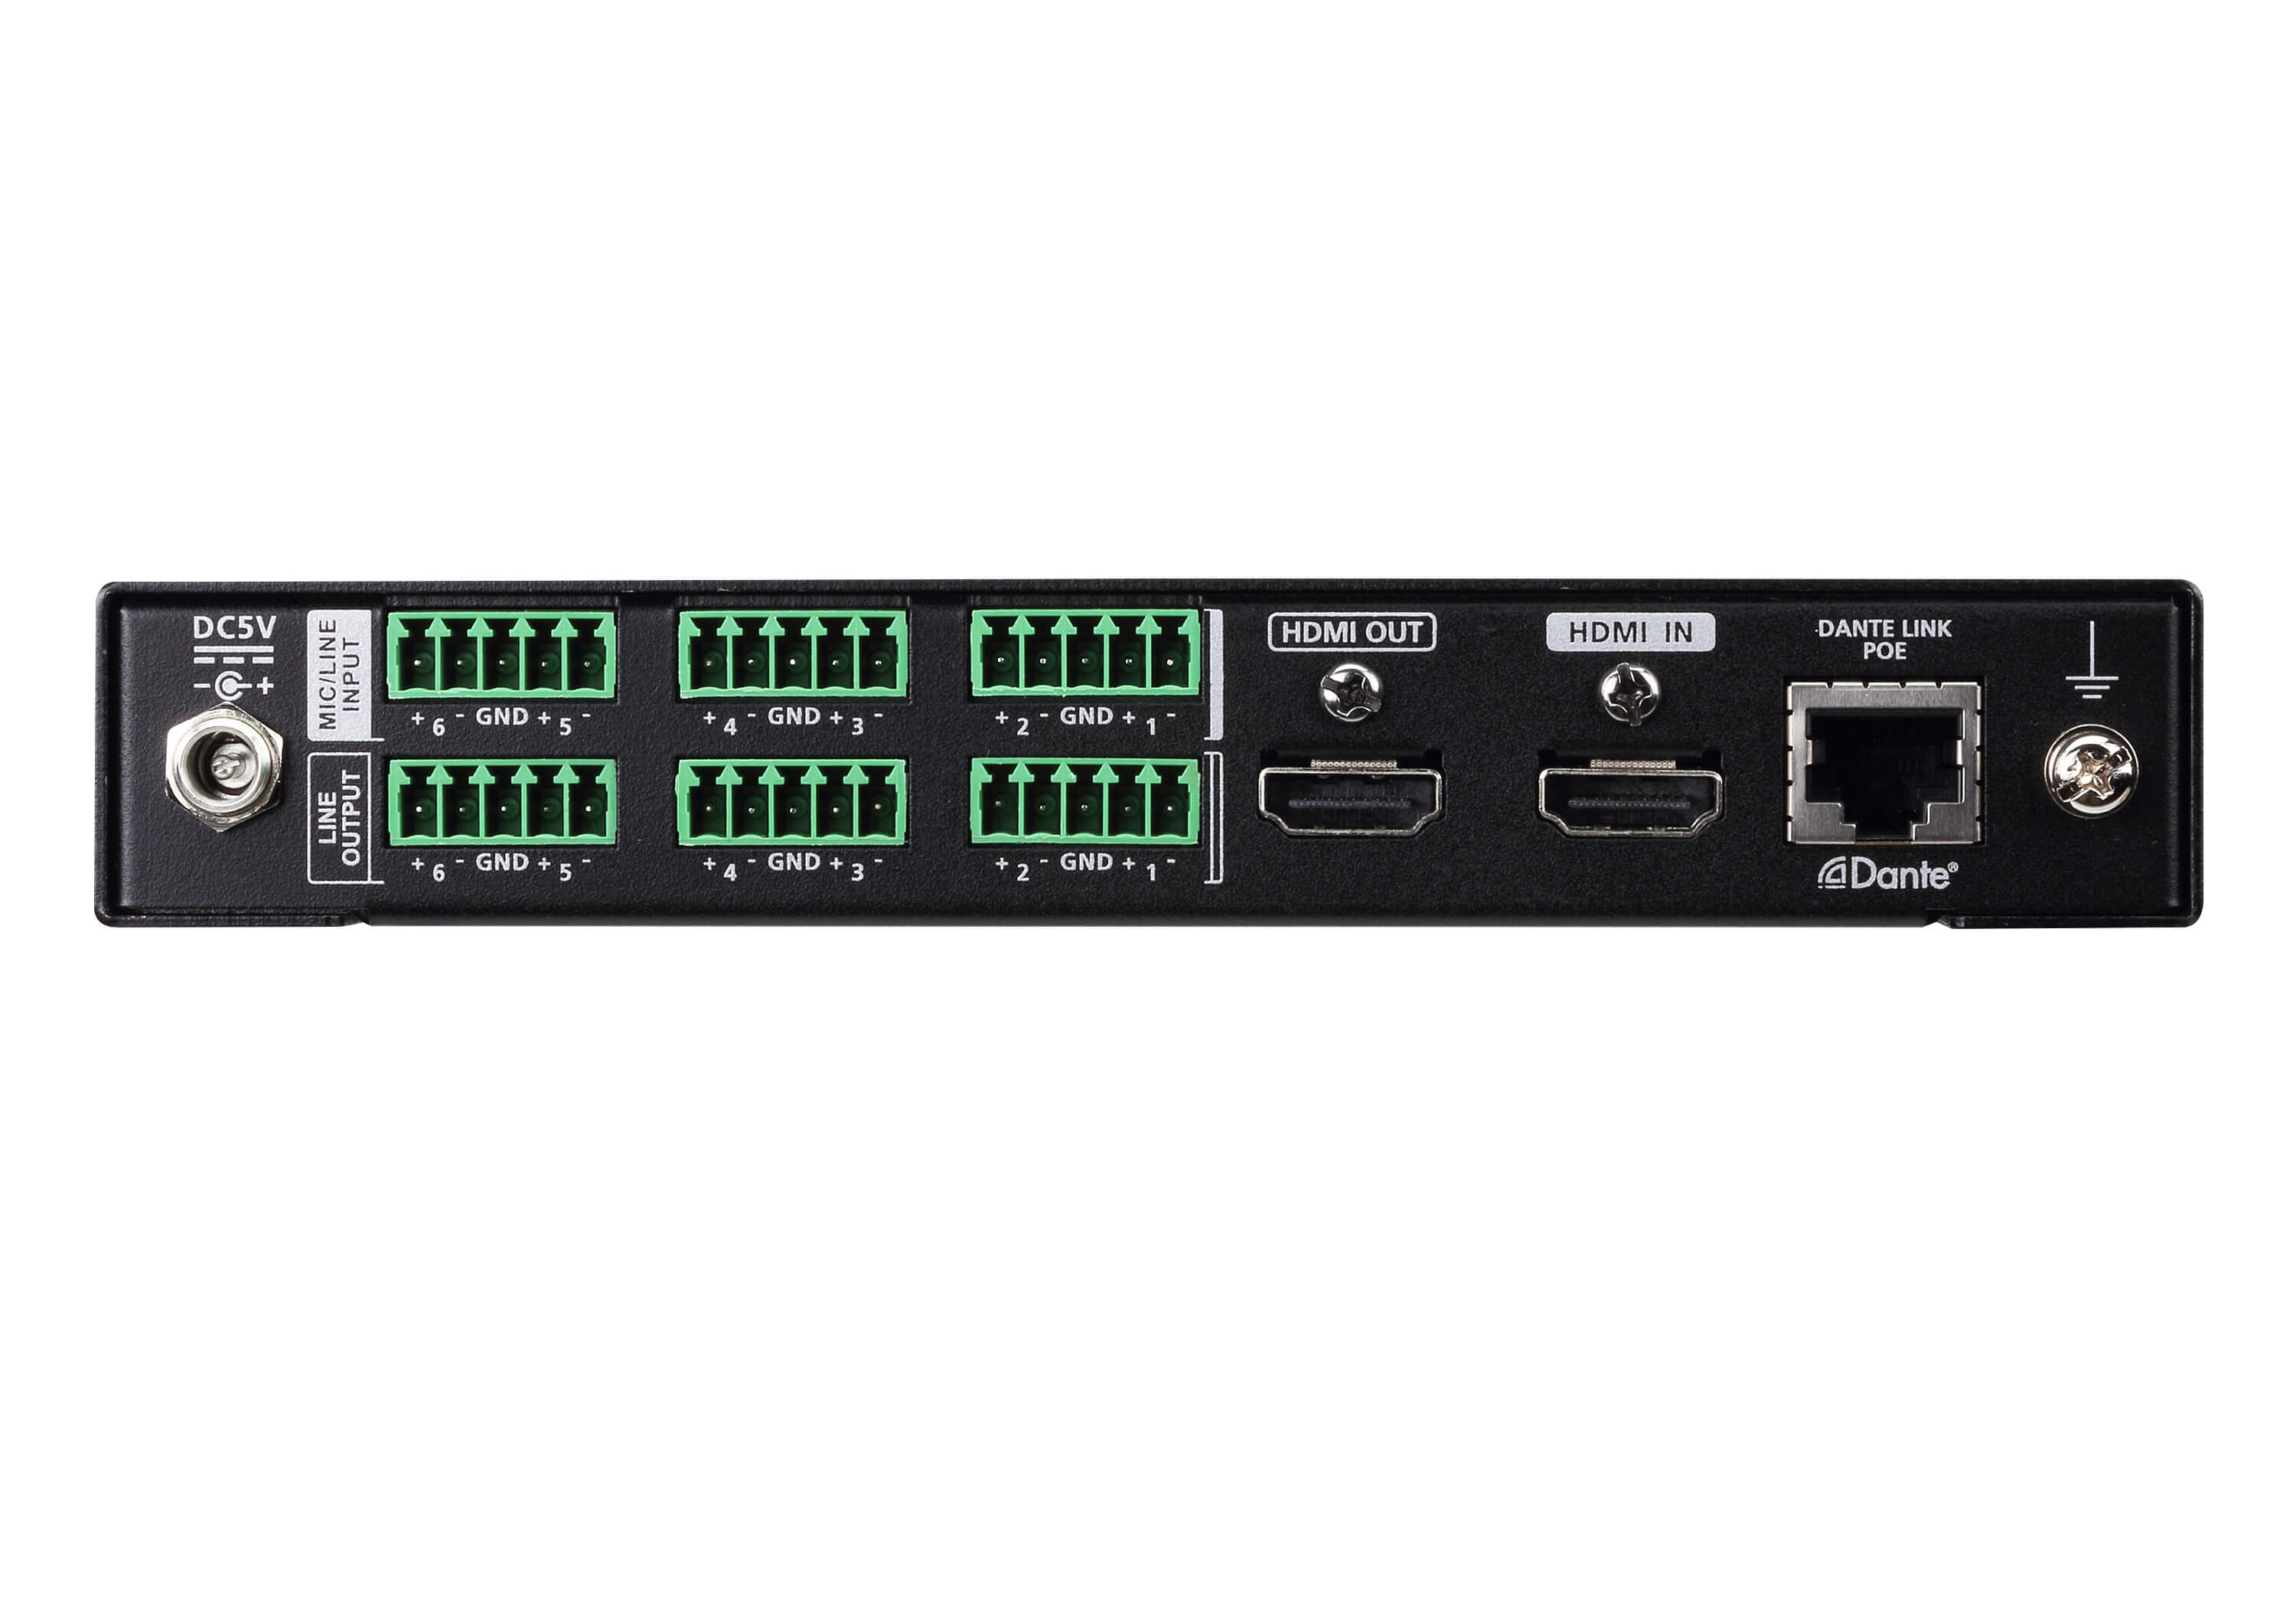 6 x 6 Dante Audio Interface with HDMI-2